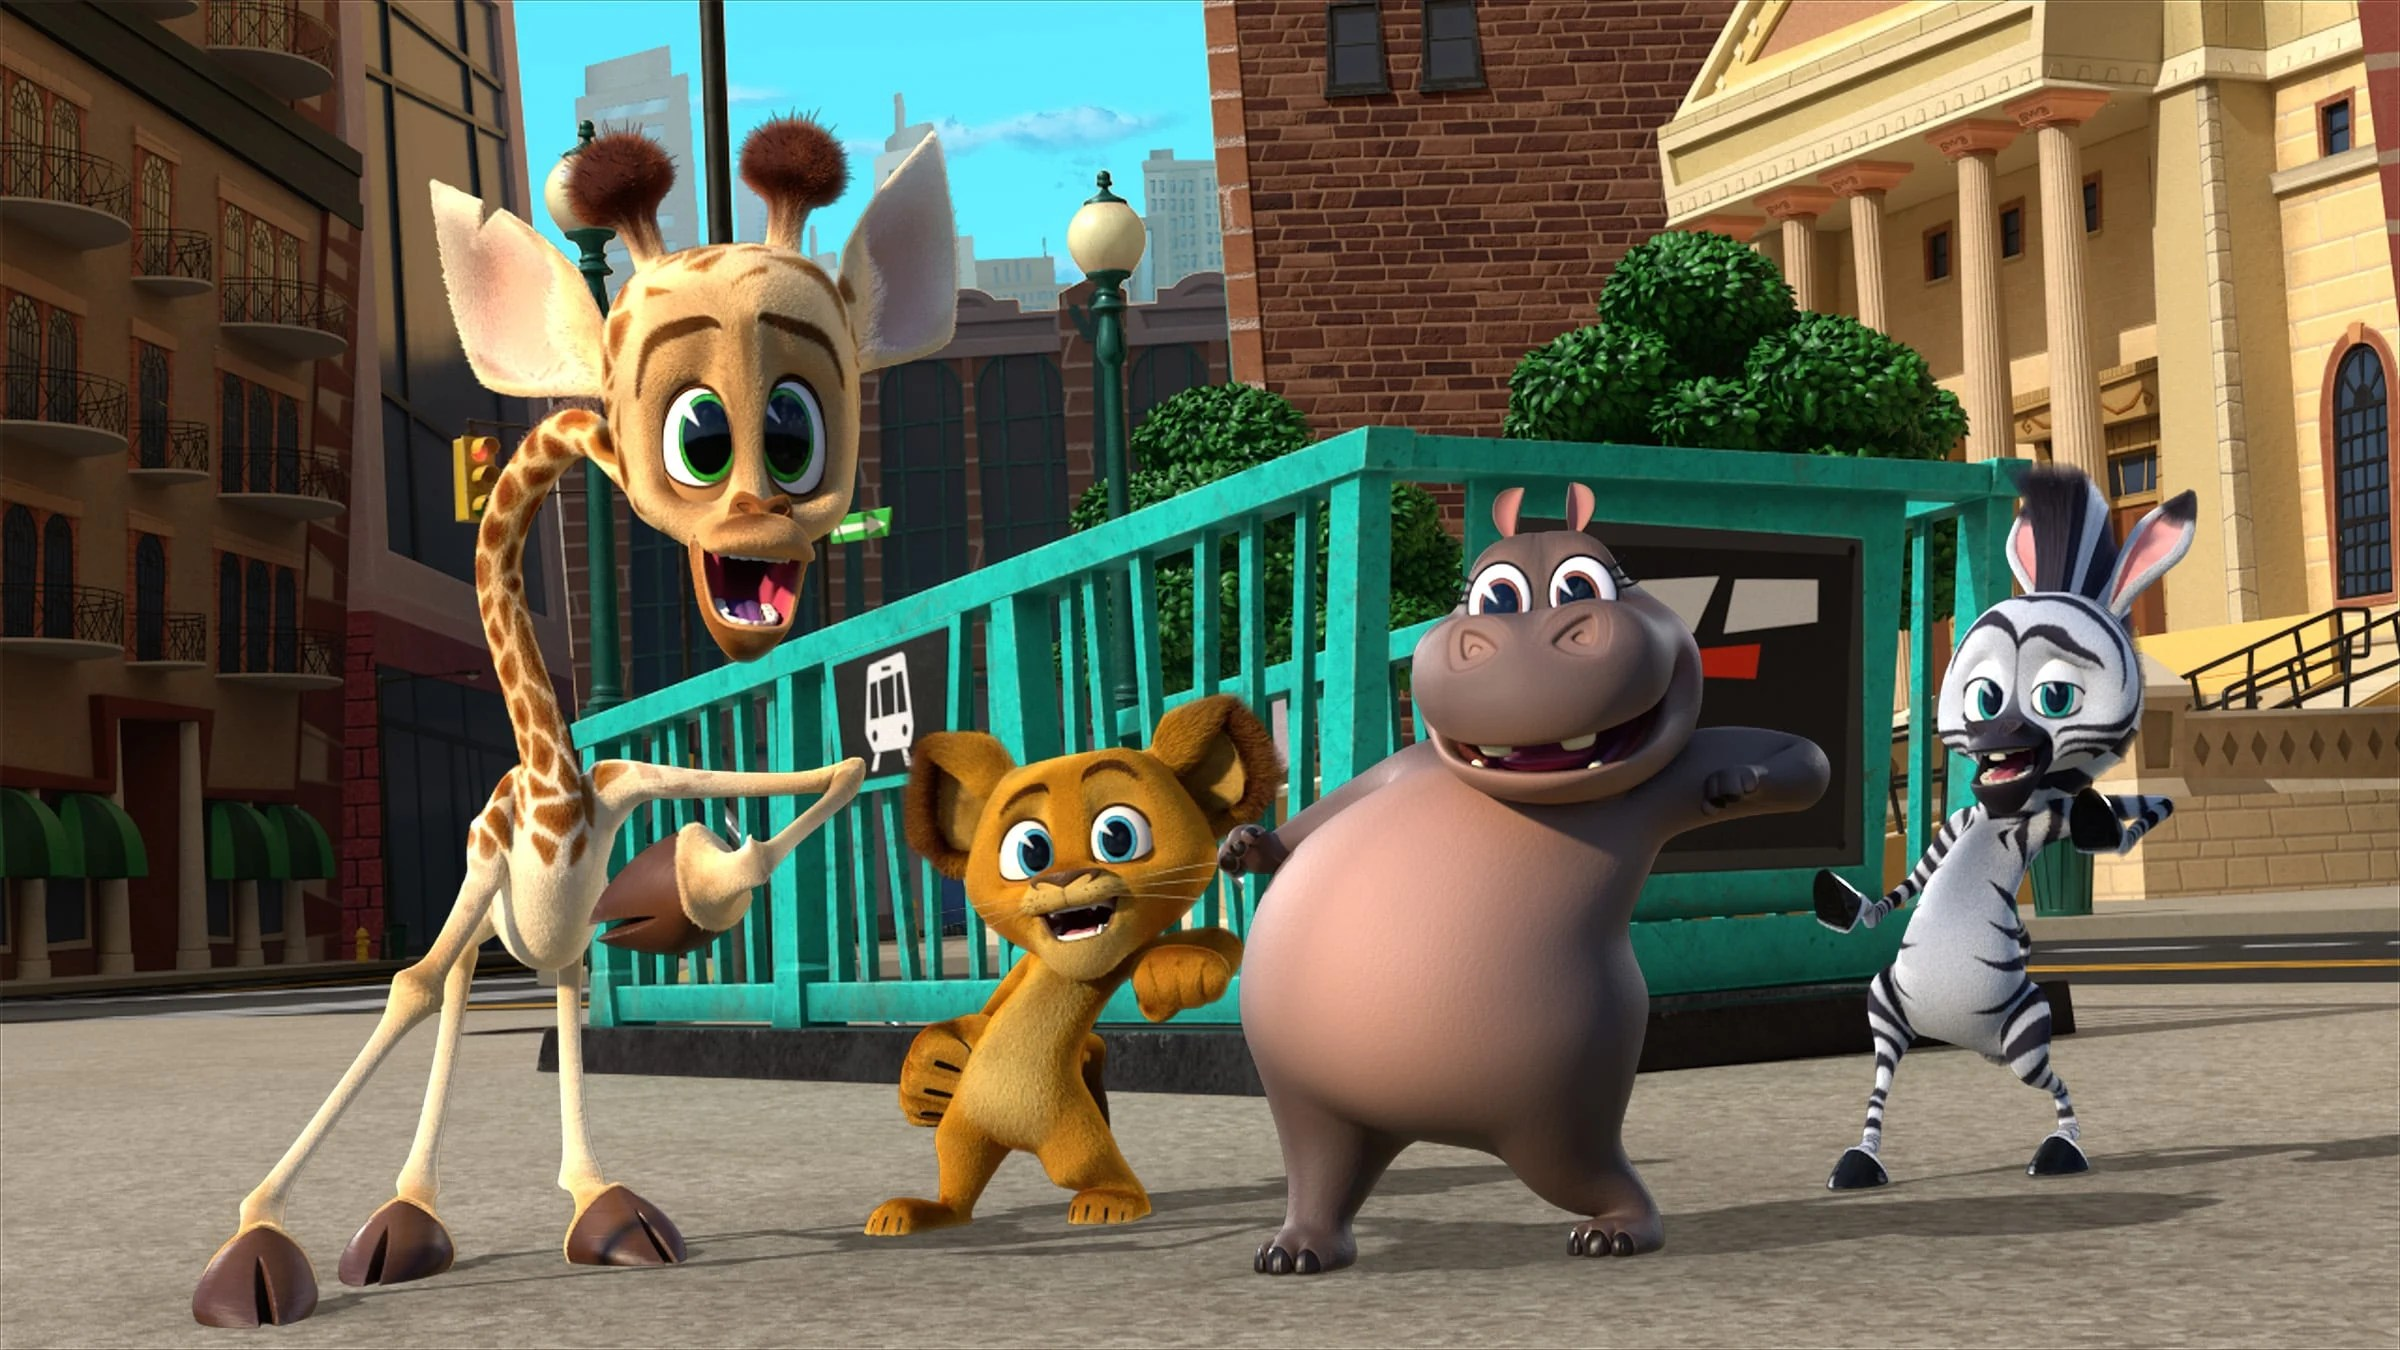 Melman, Alex, Gloria, Marty. Filled with original music and dance-worthy songs, the lovable foursome Alex the Lion, Marty the Zebra, Melman the Giraffe, and Gloria the Hippo steal the show in Madagascar: A Little Wild. Capturing the iconic personalities of the four dynamos,Madagascar: A Little Wildshowcases the team as kids residing in their rescue habitat at the Central Park Zoo.